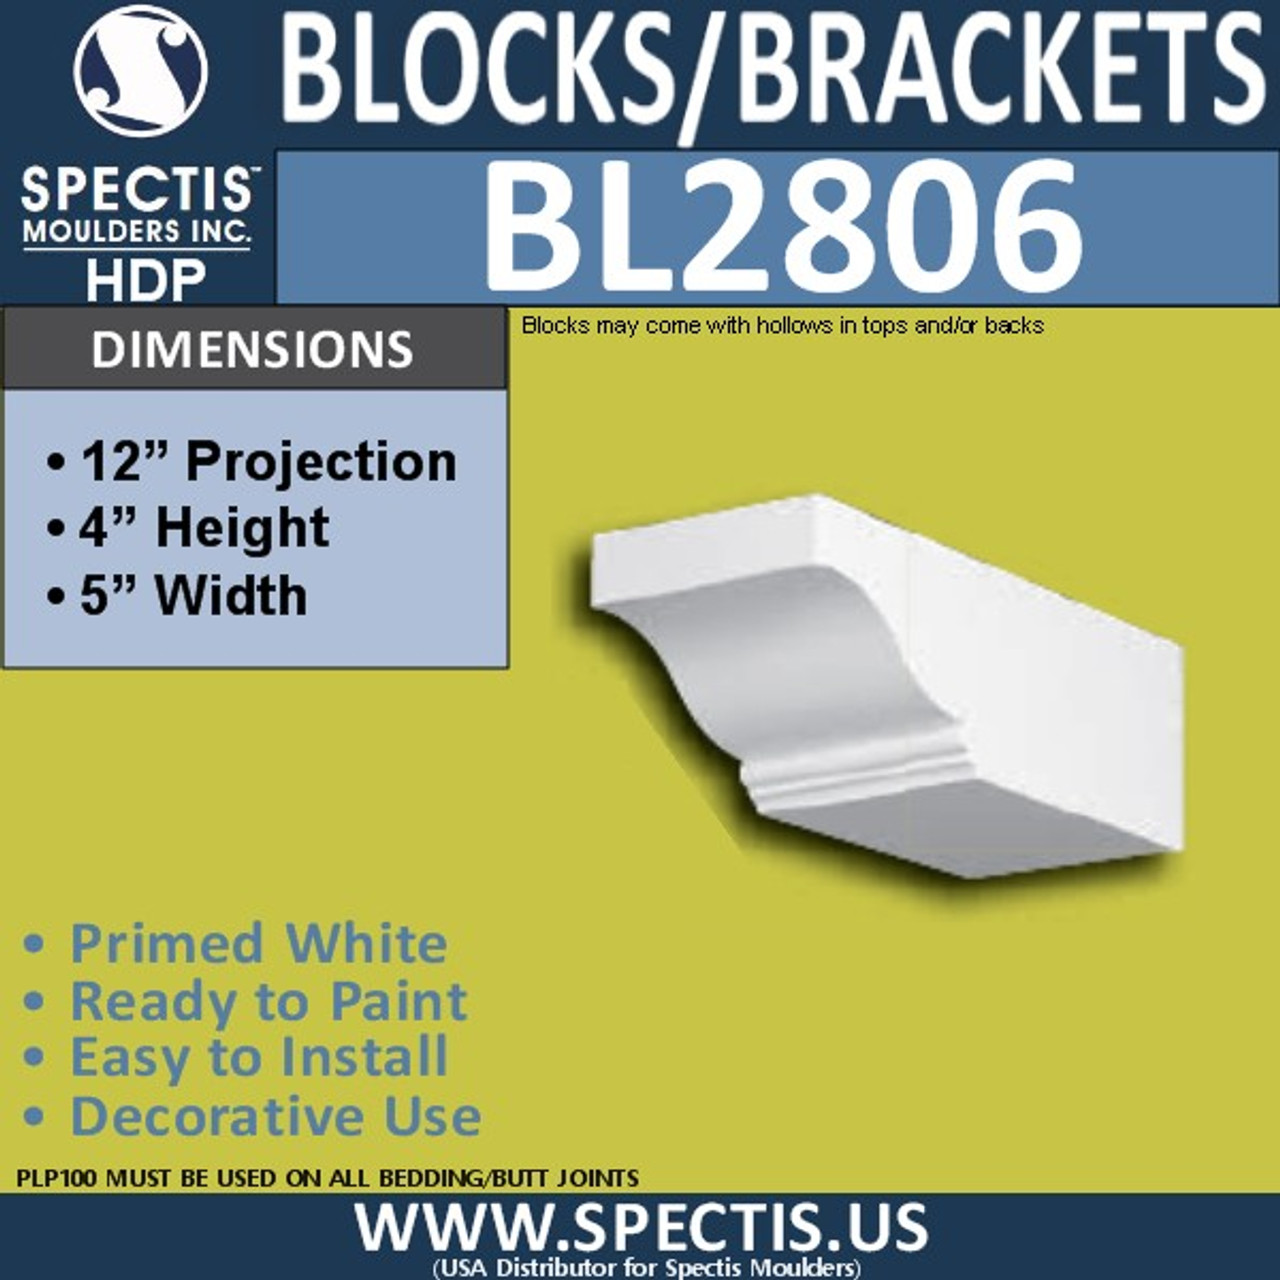 "BL2806 Eave Block or Bracket 5""W x 4""H x 12"" P"